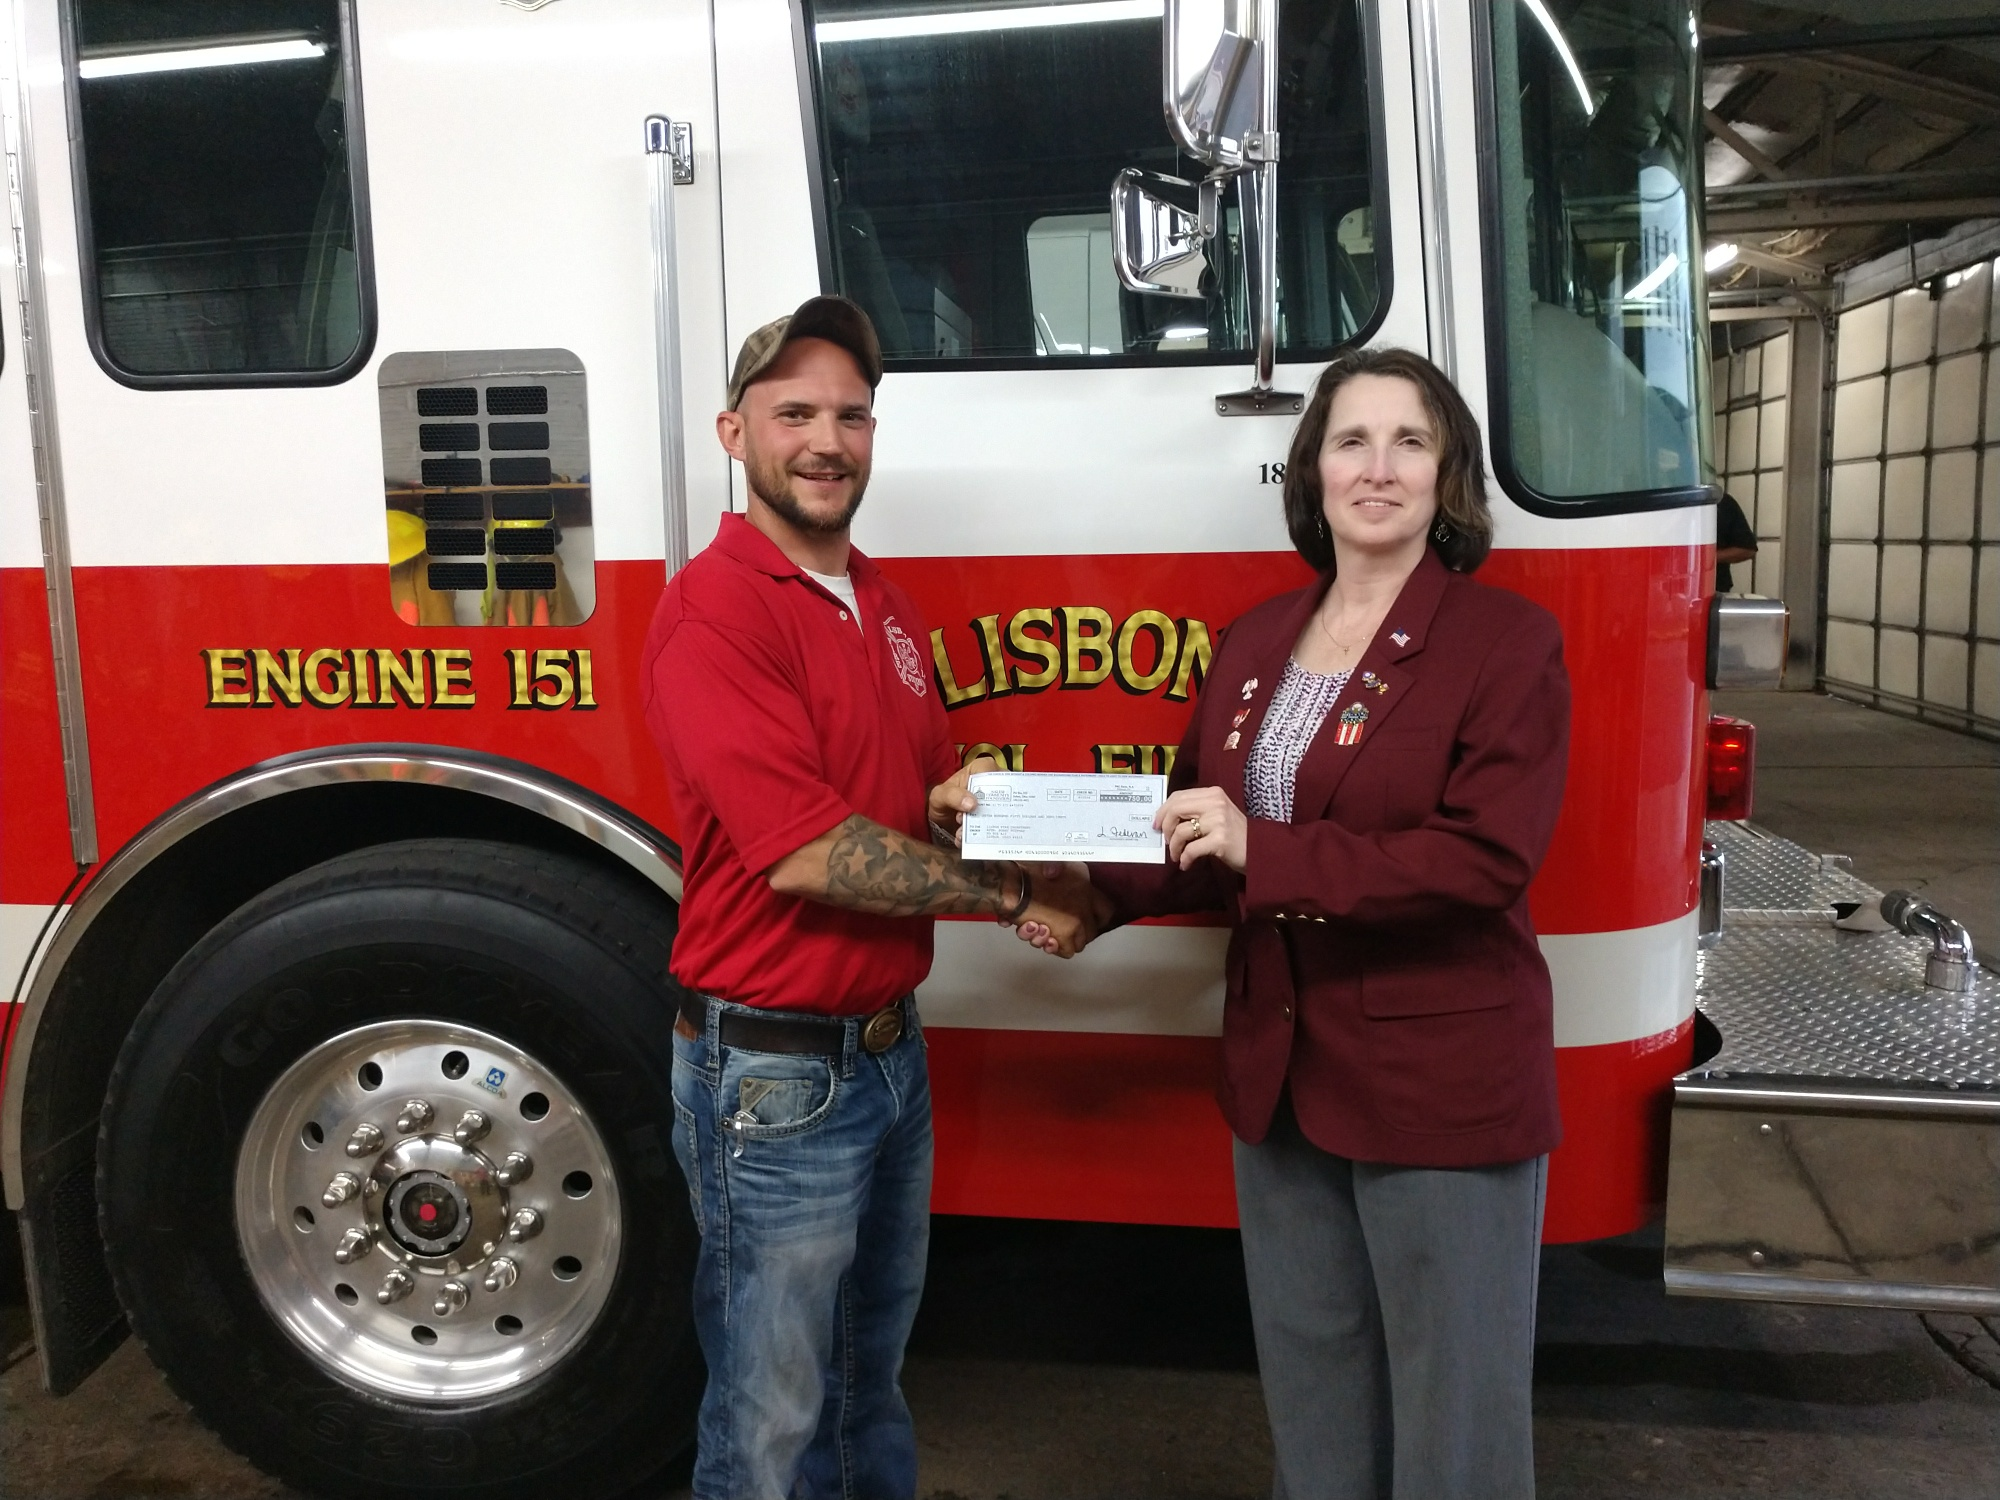 Presenting the check is Kim Chapman, Leading Knight to Bobby Huffman, Training Officer of the Lisbon FD.